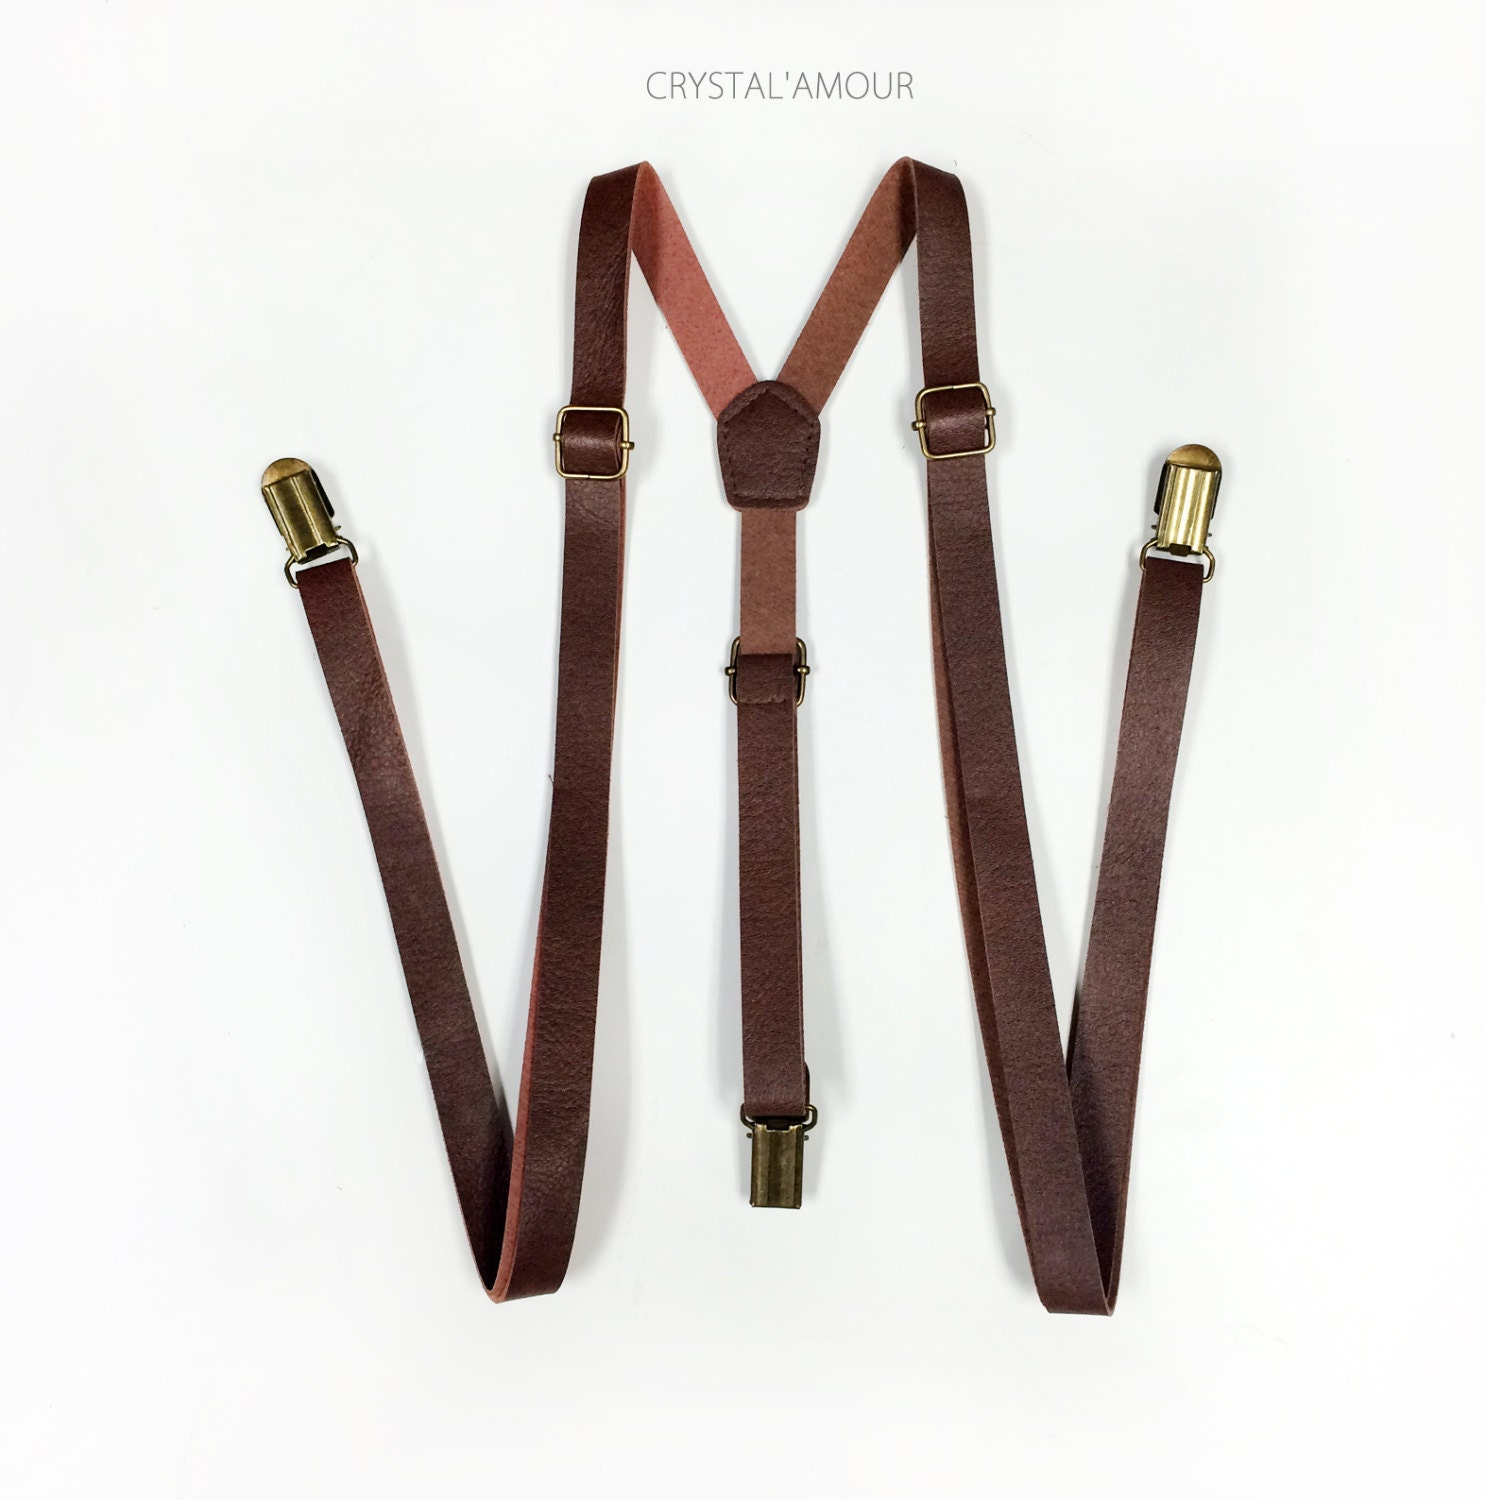 Nocona Men's Leather Ostrich Print Suspenders $ Nocona Men's Round Concho Western Suspenders $ 3D Basketweave Star Concho Suspenders - XL $ Nocona Embossed Basketweave Star Concho Suspenders $ Nocona Men's Tooled Suspenders $ Nocona Leather Galluses with Buffalo Nickel Conchos.